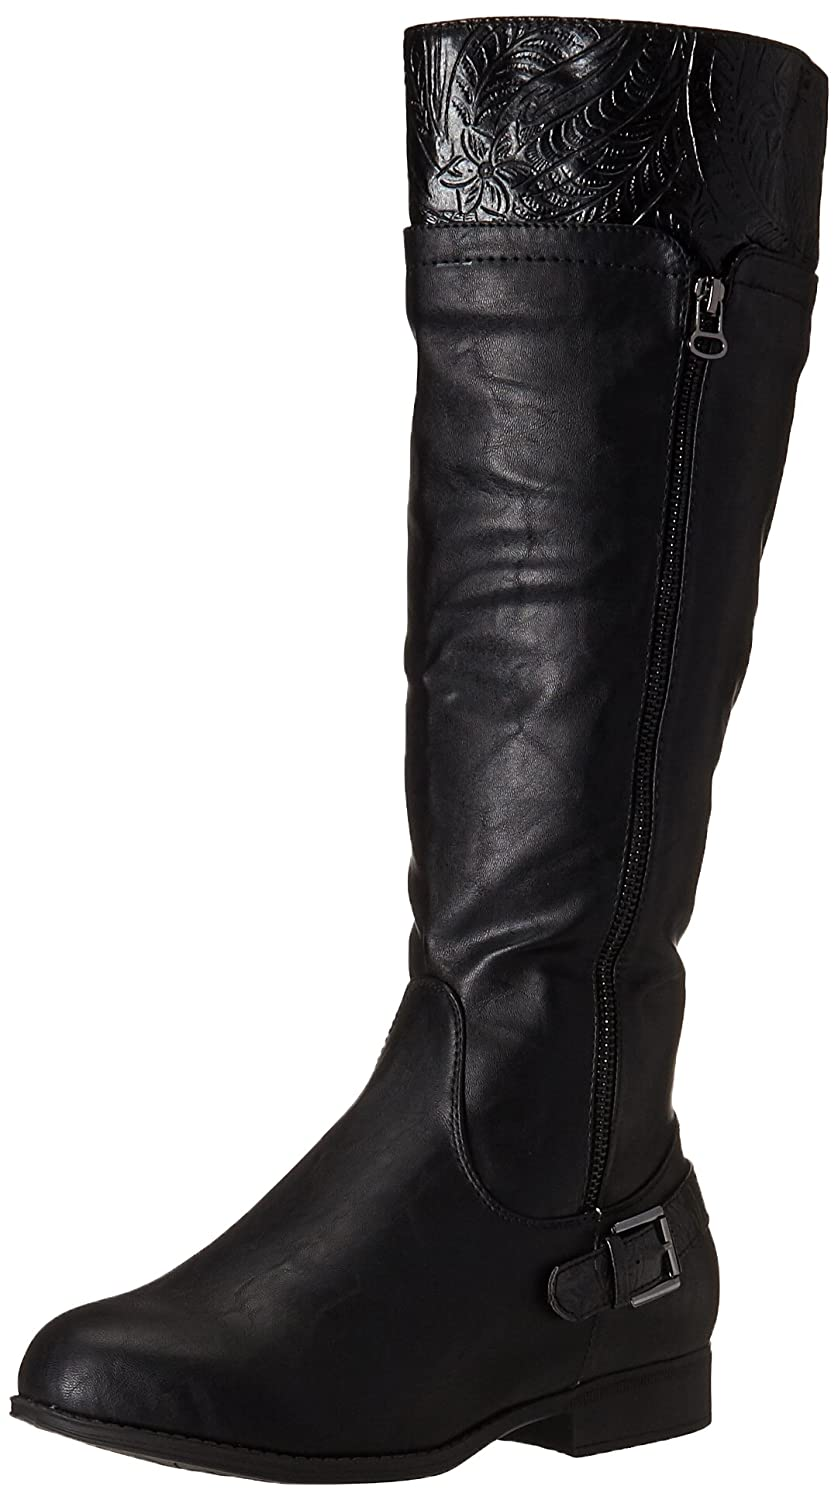 Easy Street Women's Burke Riding Boot B00ZFUECI6 5.5 B(M) US|Black/Tooling/Gore